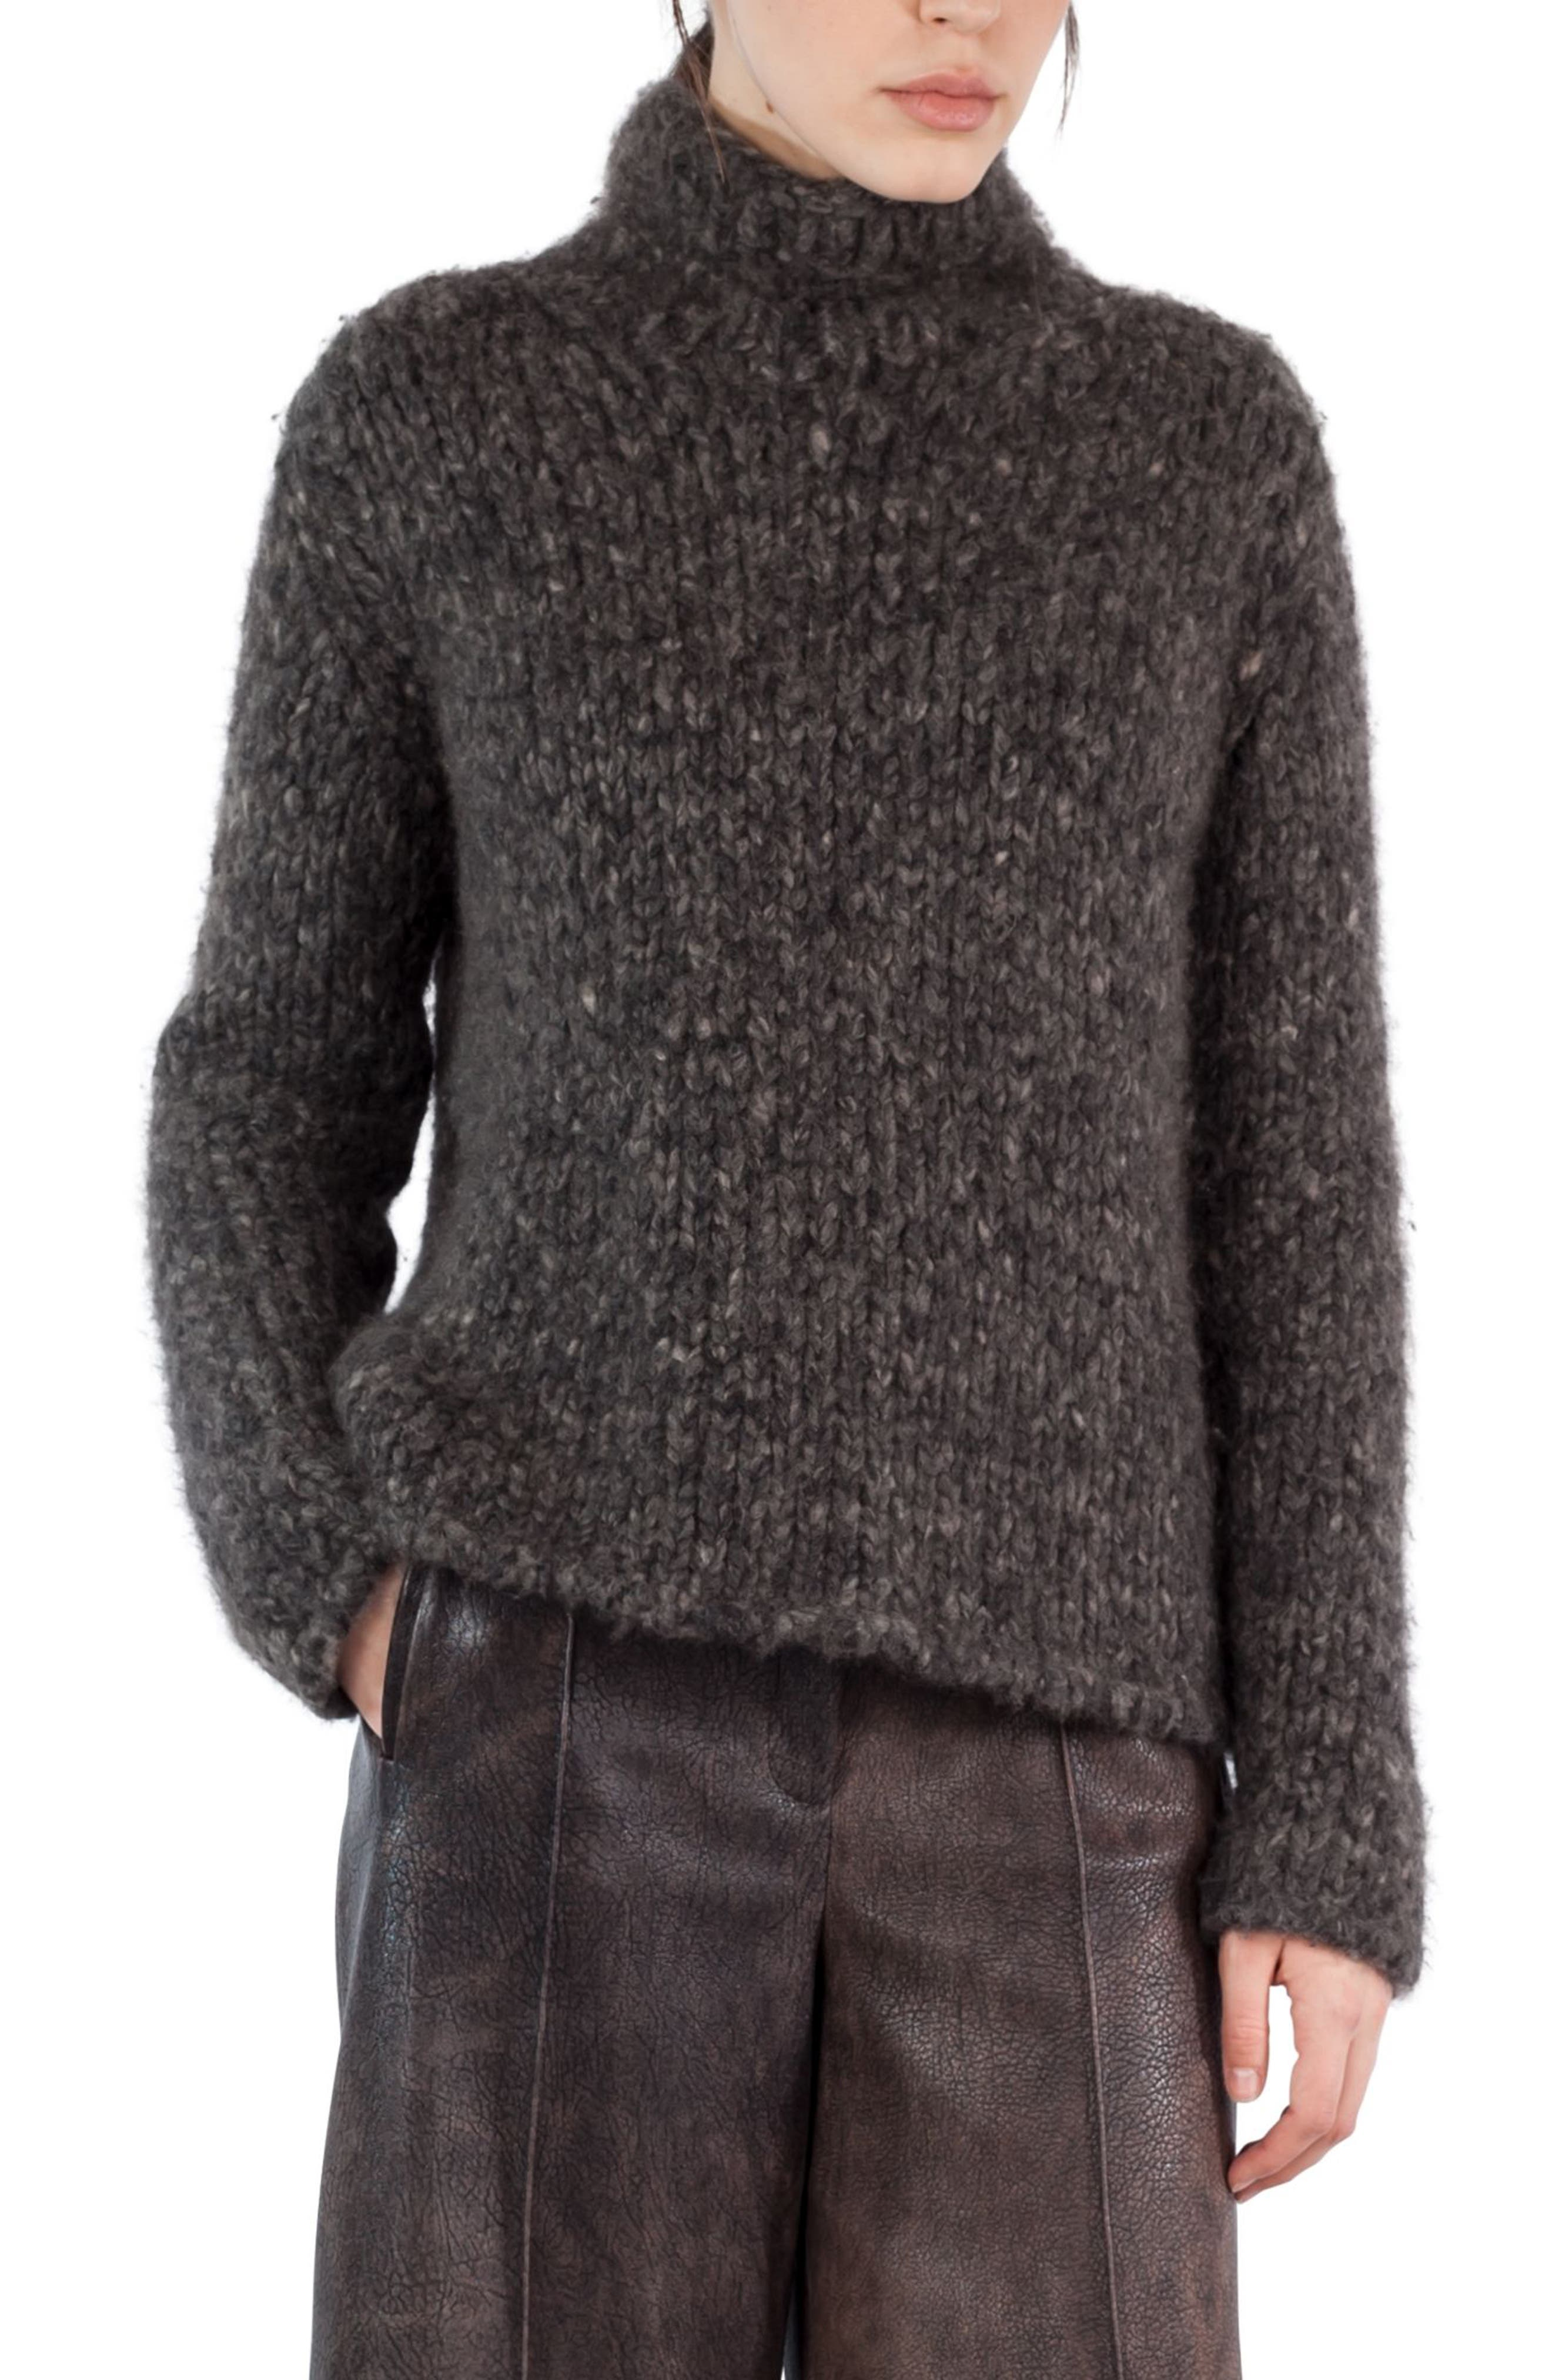 Mélange Wool & Cashmere Sweater,                         Main,                         color, Taupe